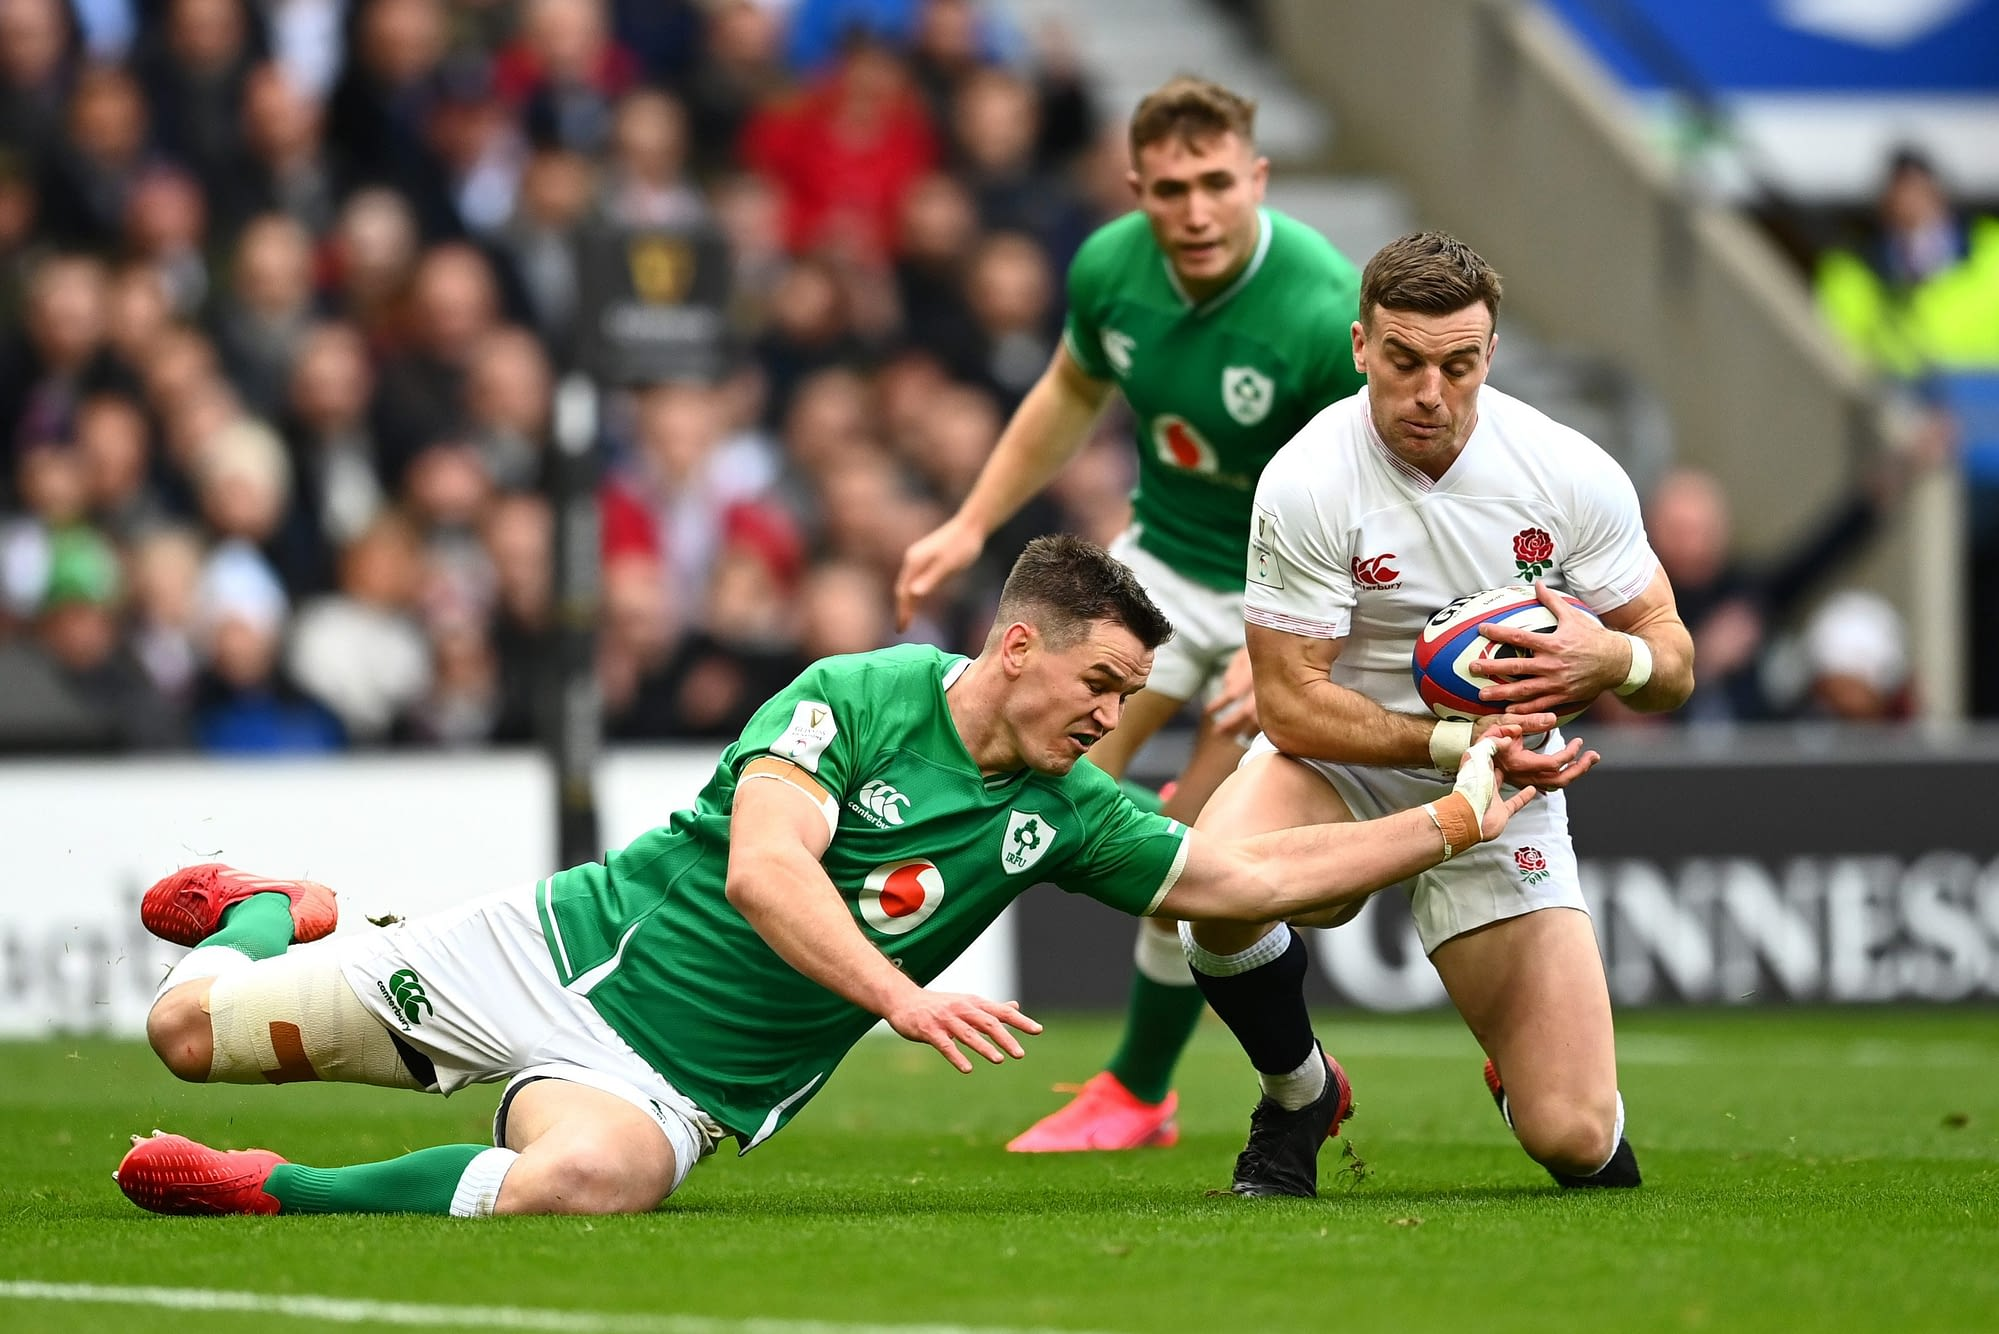 LONDON, ENGLAND - FEBRUARY 23: George Ford of England scores his team's first try during the 2020 Guinness Six Nations match between England and Ireland at Twickenham Stadium on February 23, 2020 in London, England. (Photo by Clive Mason/Getty Images)